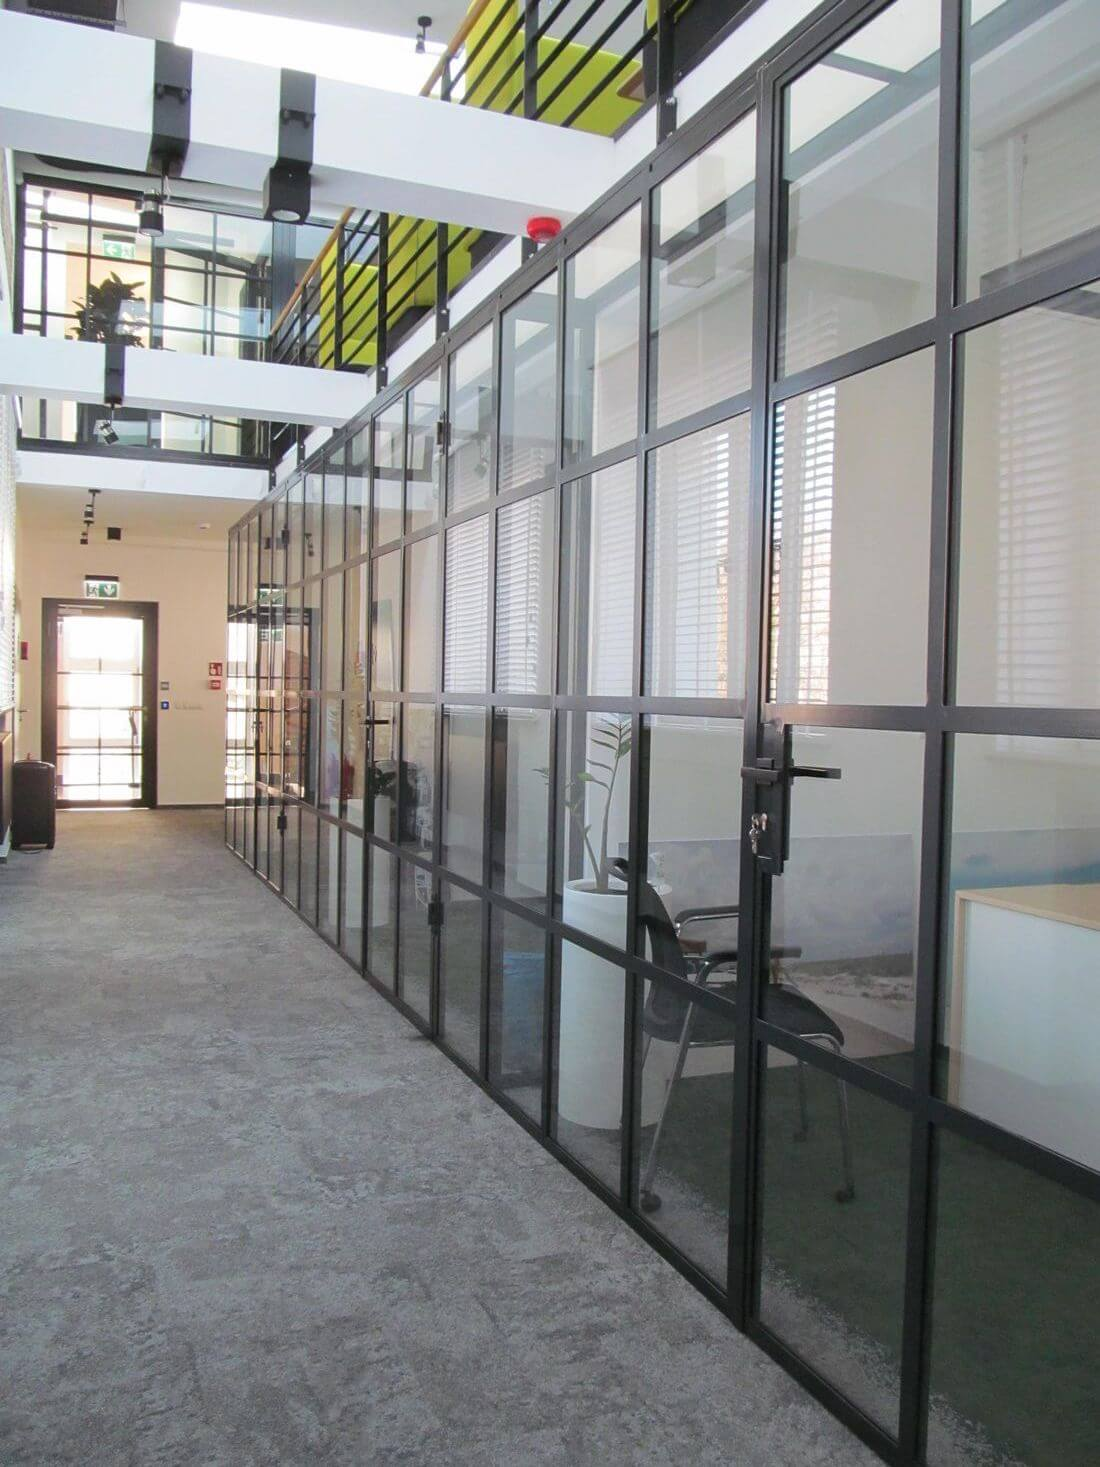 Loft Door and Loft Wall System in industrial style in reinforced glass and structural steel